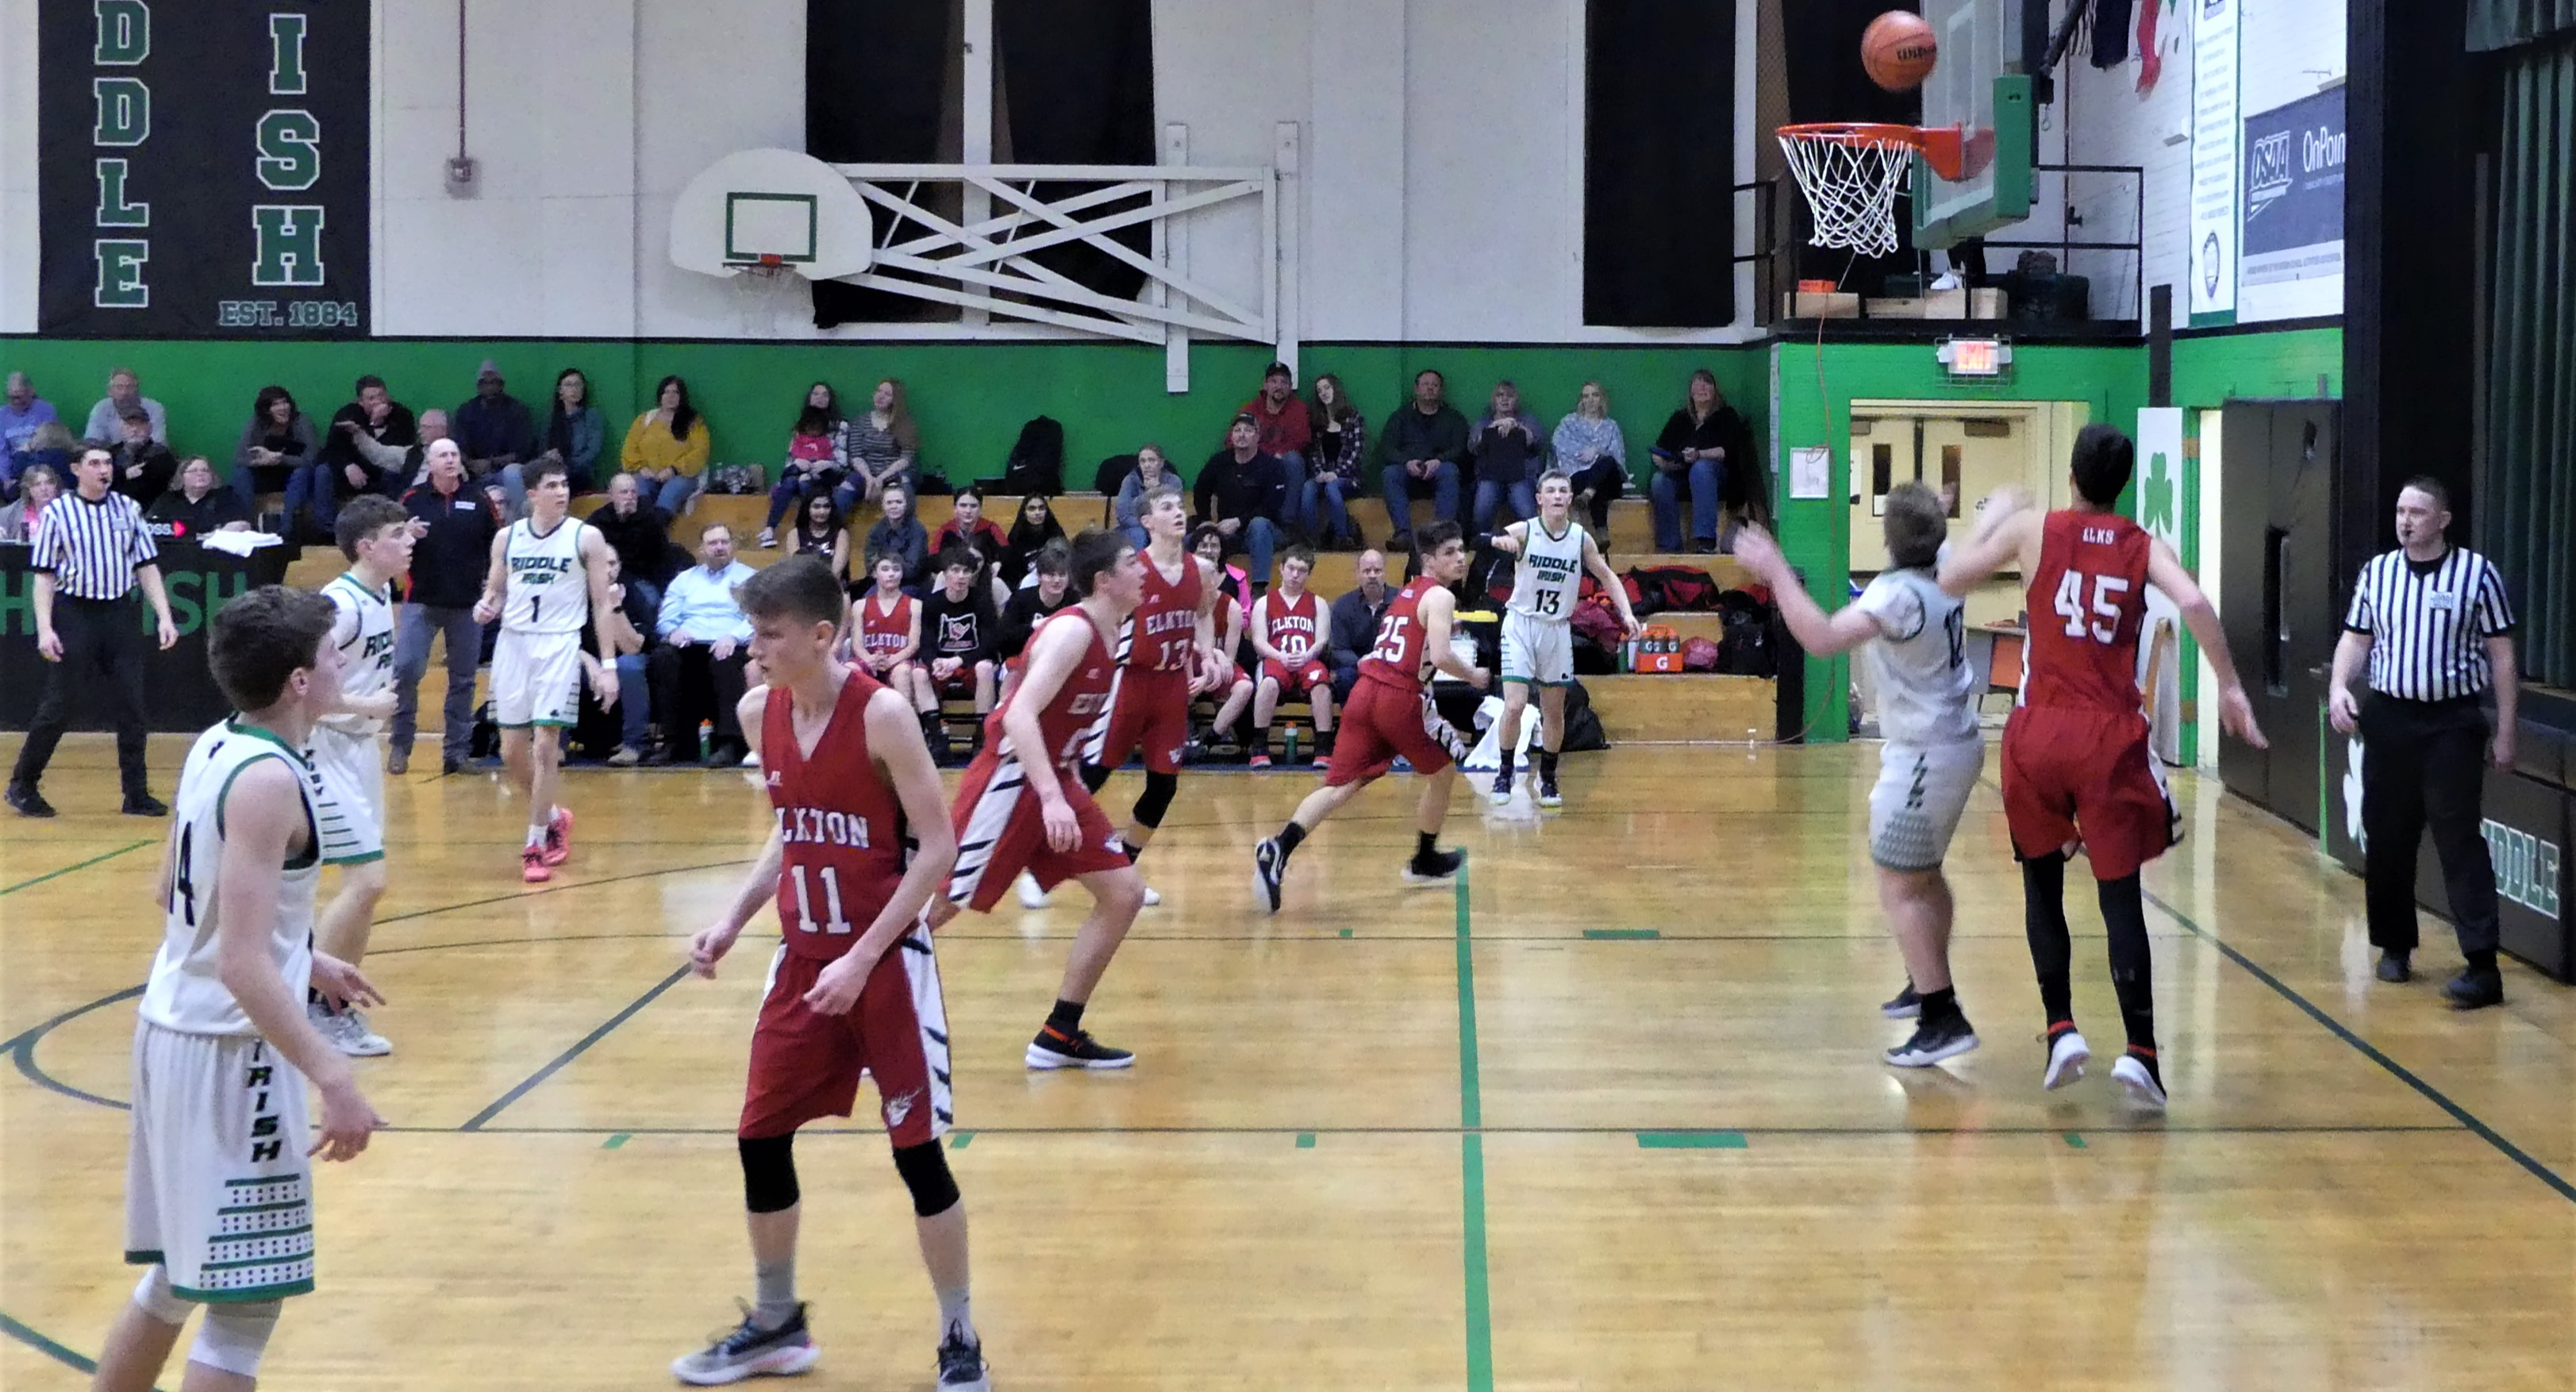 Riddle basketball team plays at home